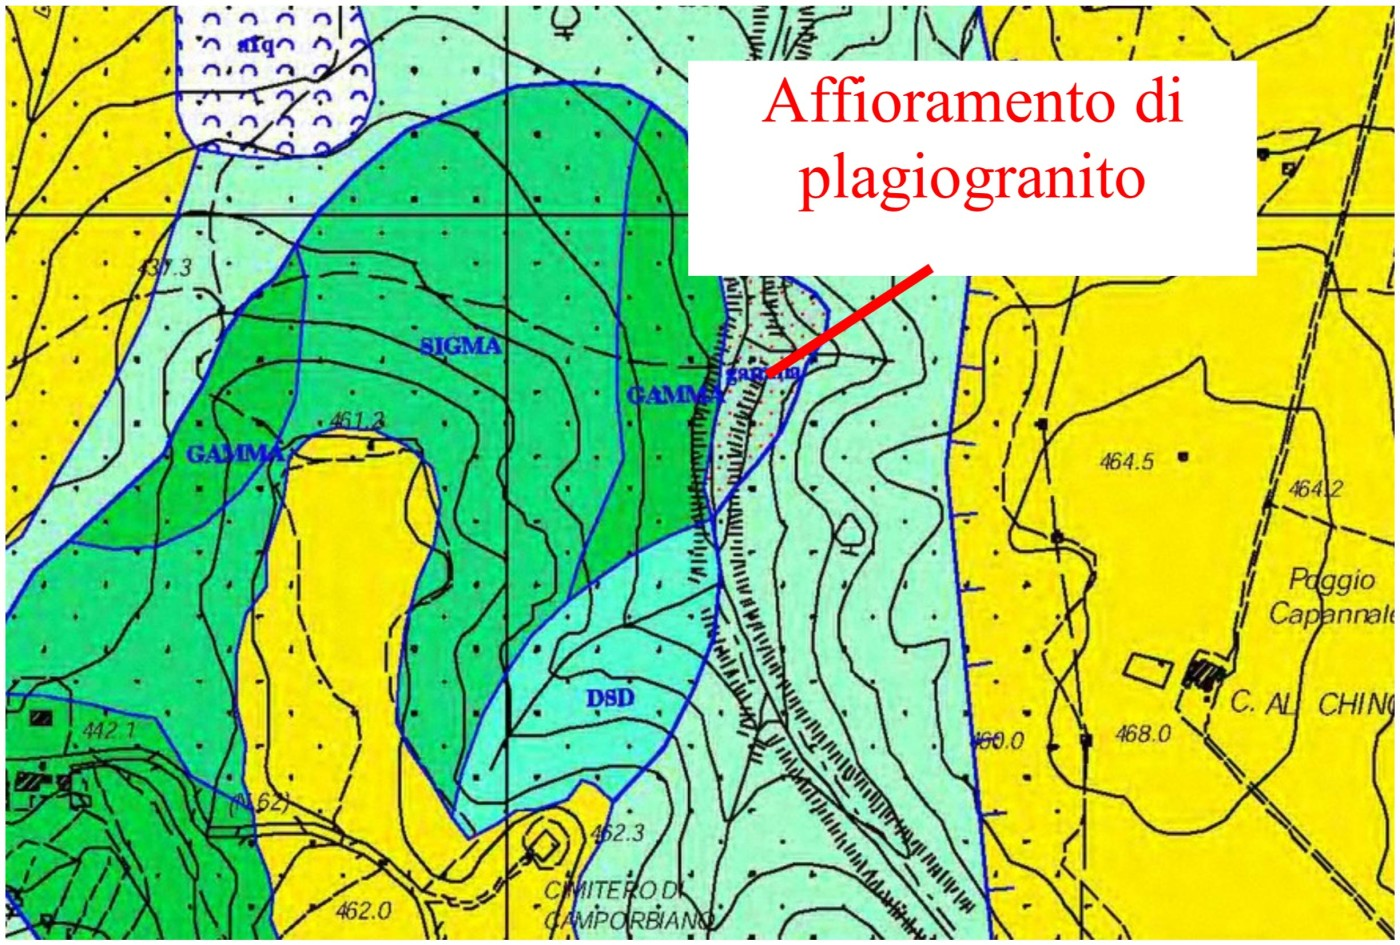 Fig. 7 -Stralcio della carta Geologica scala 1:10000 relativa all'area a nord di Camporbiano